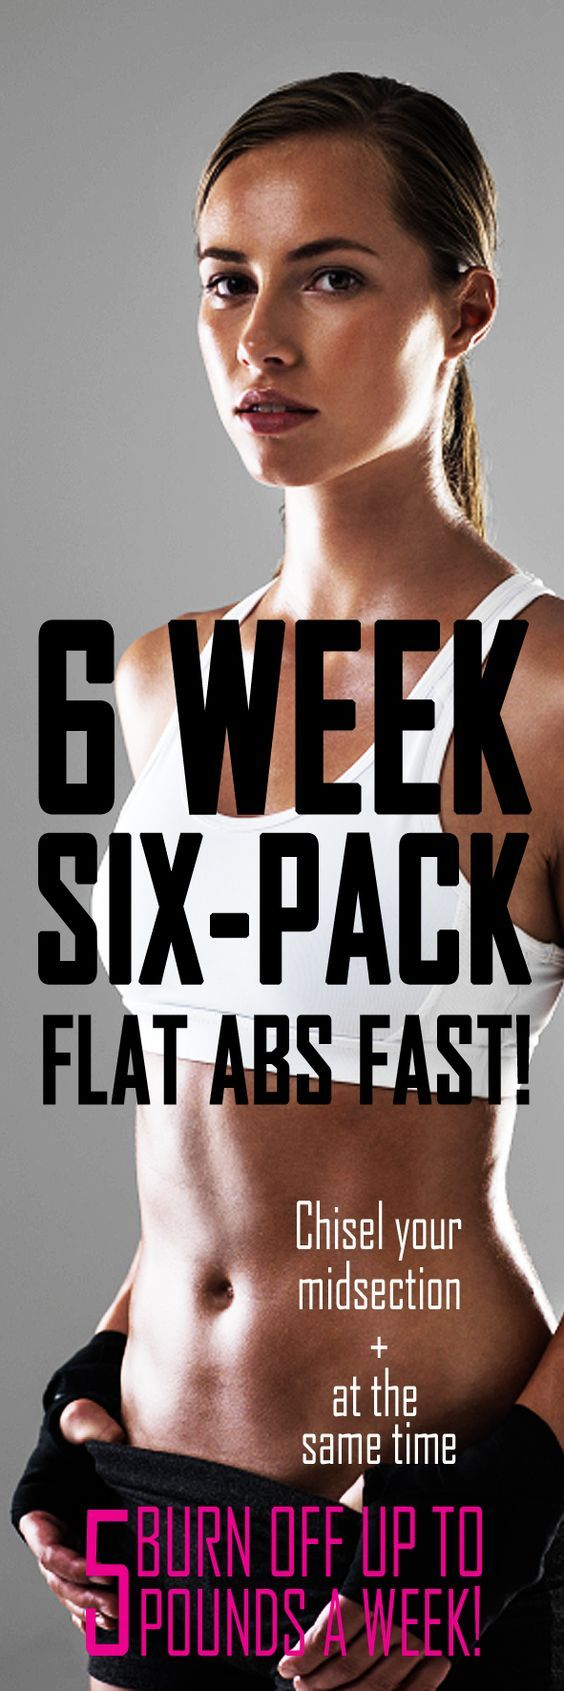 Welcome to the 6 Week Six-Pack Abs Workout – Jillian Michael's fast-paced fitness ab-shredding routine that will chisel your midsection and burn off up to 5 POUNDS A WEEK! the best results do this workout 5 times per week with 2 rest days to allow your body to recover, and grow stronger. Forget boring sit-ups! Stick with this workout routine and you will see dramatic results in just 6 weeks! #weightloss #workoutforwomen #muffintop #bellyfat